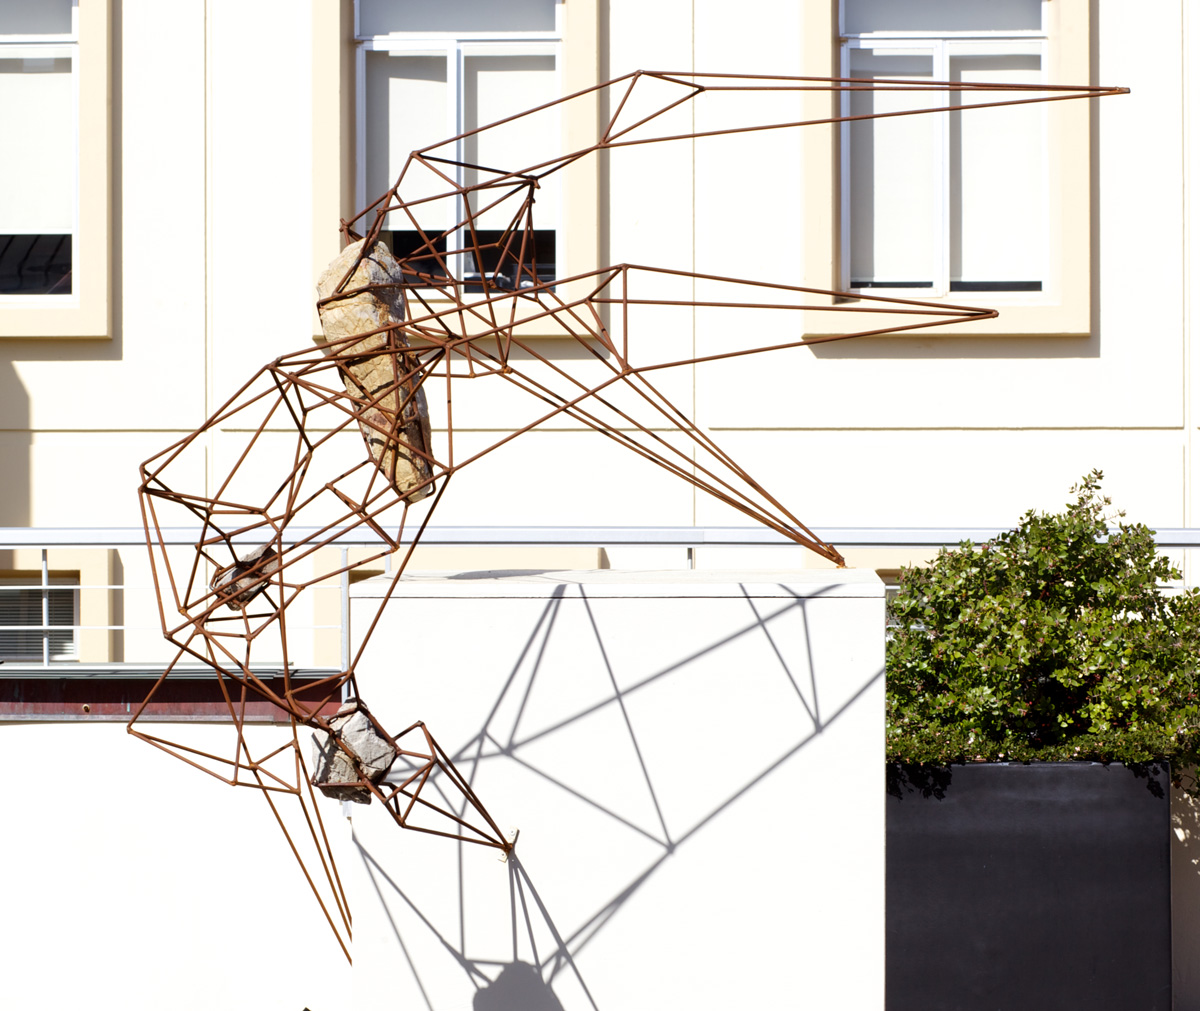 "36"" x 36"" x 60"", 2013 (Installation view at the University of San Francisco Sculpture Terrace.)"